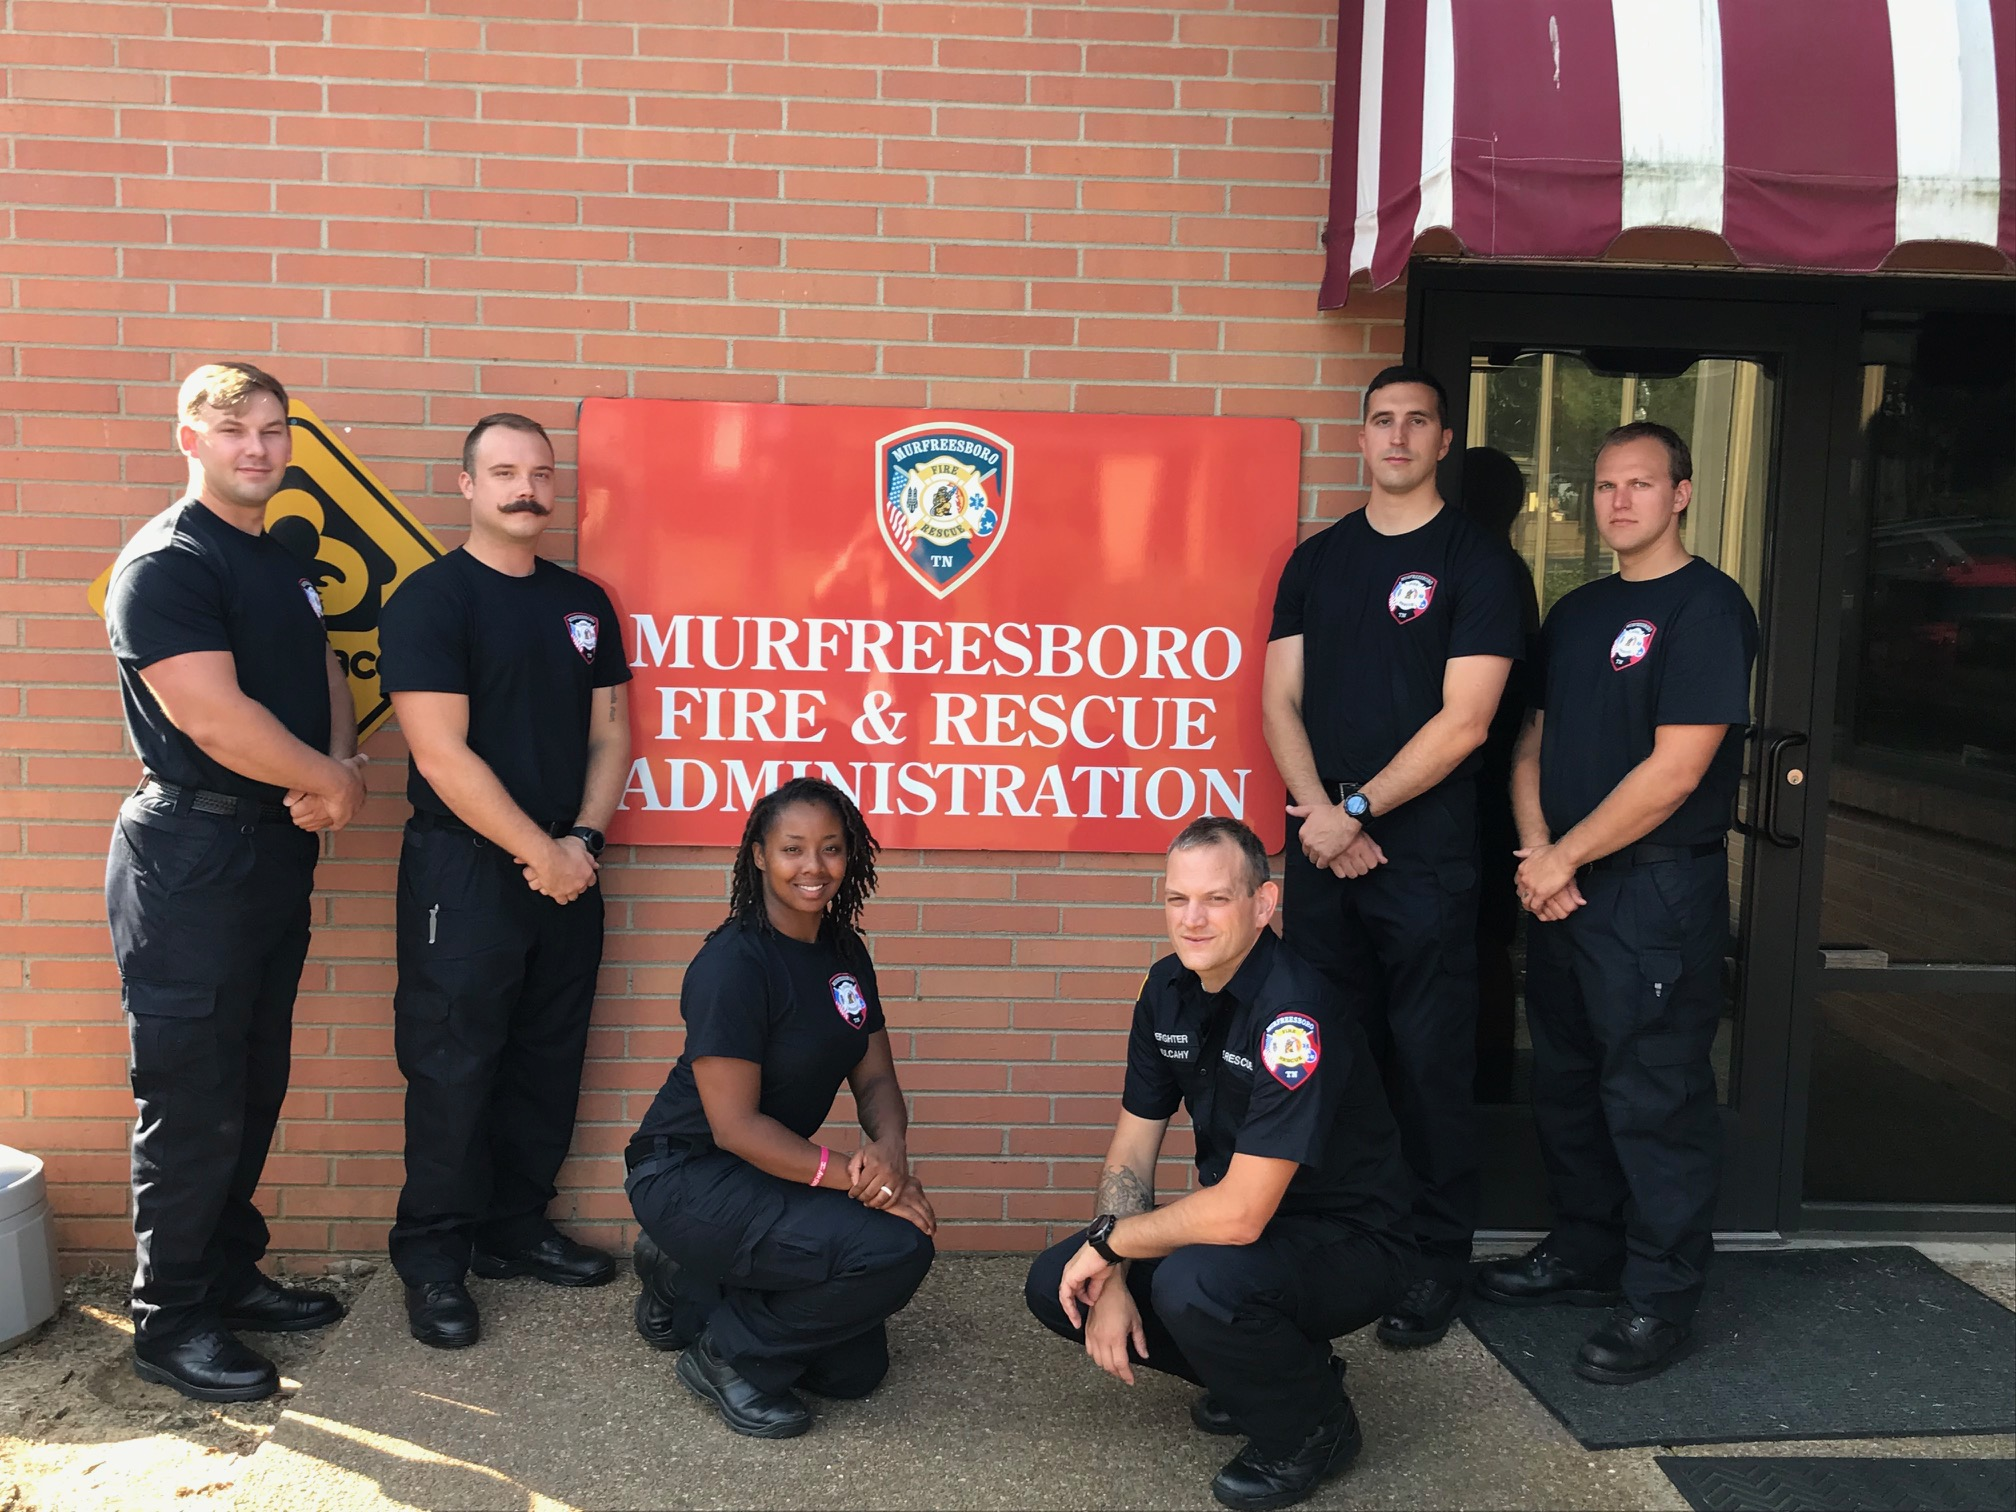 New Murfreesboro Firefighters